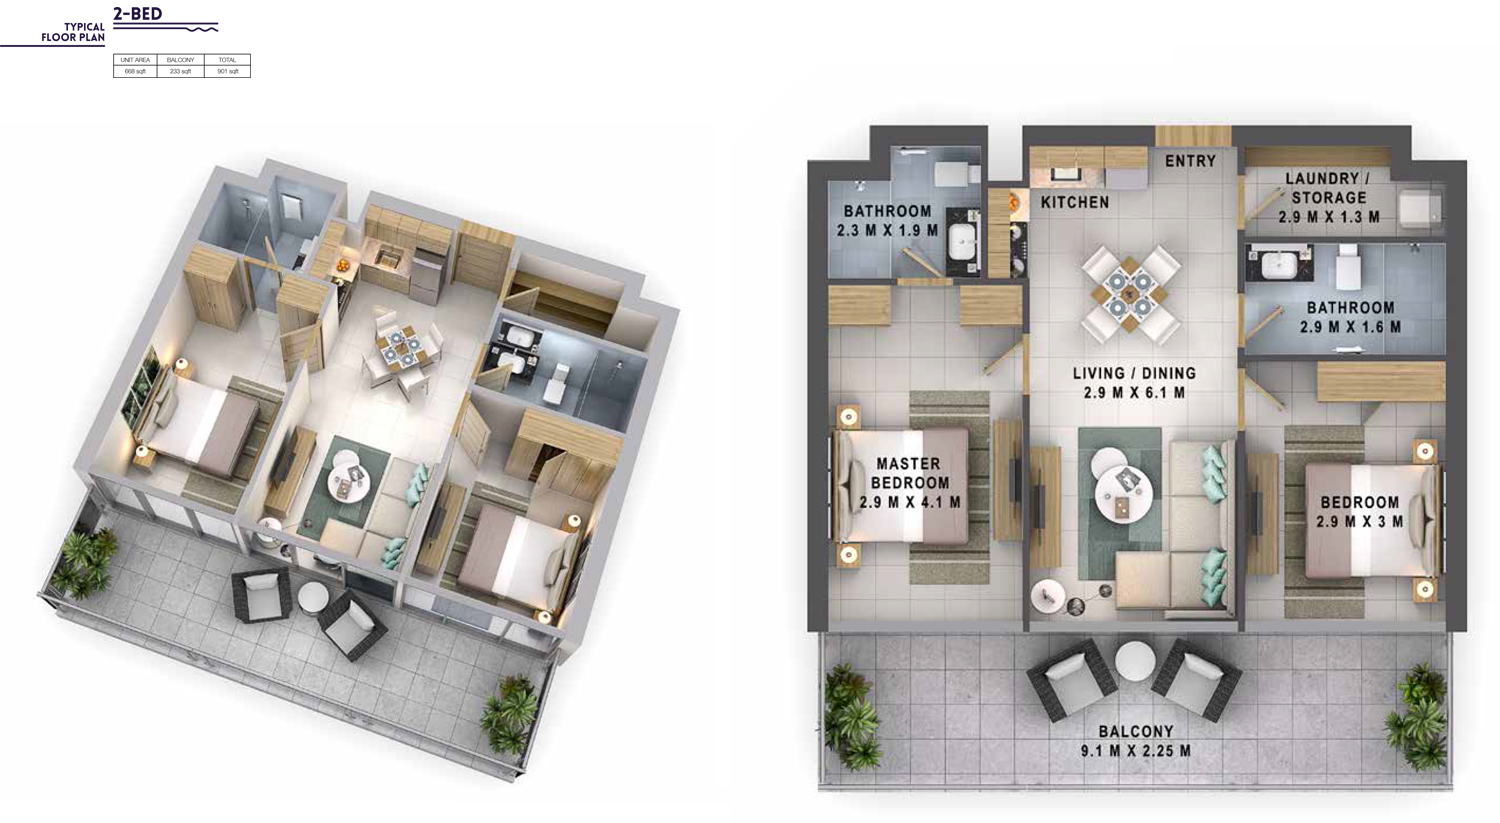 2 Bedroom Size 901 sq.ft